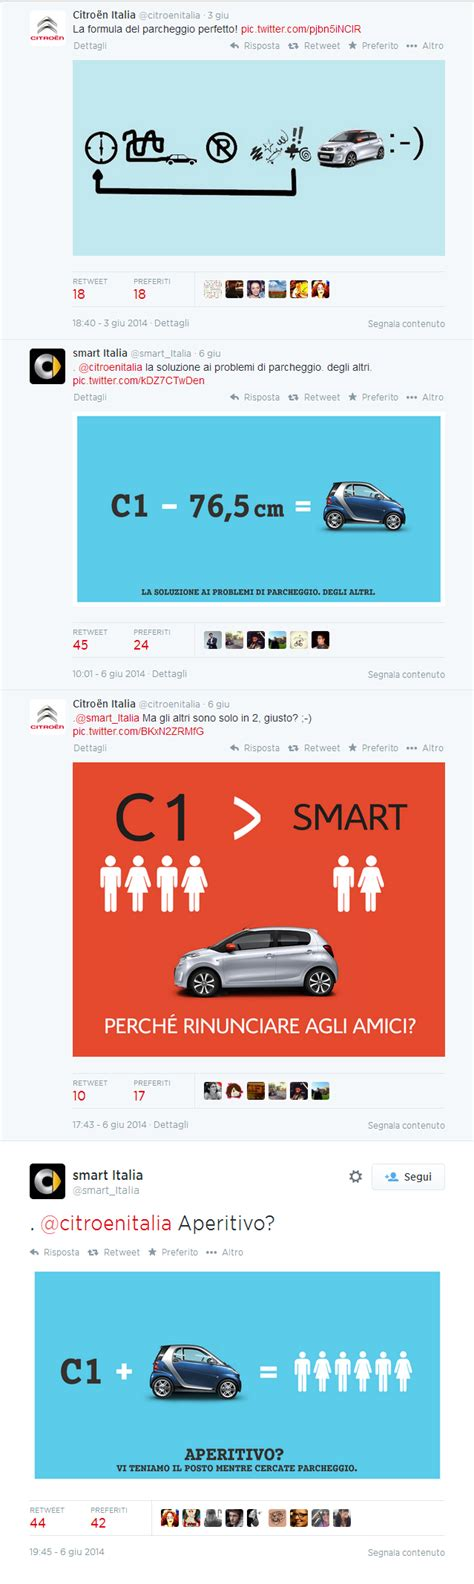 si鑒e social citroen social media marketing parcheggio ed aperitivo